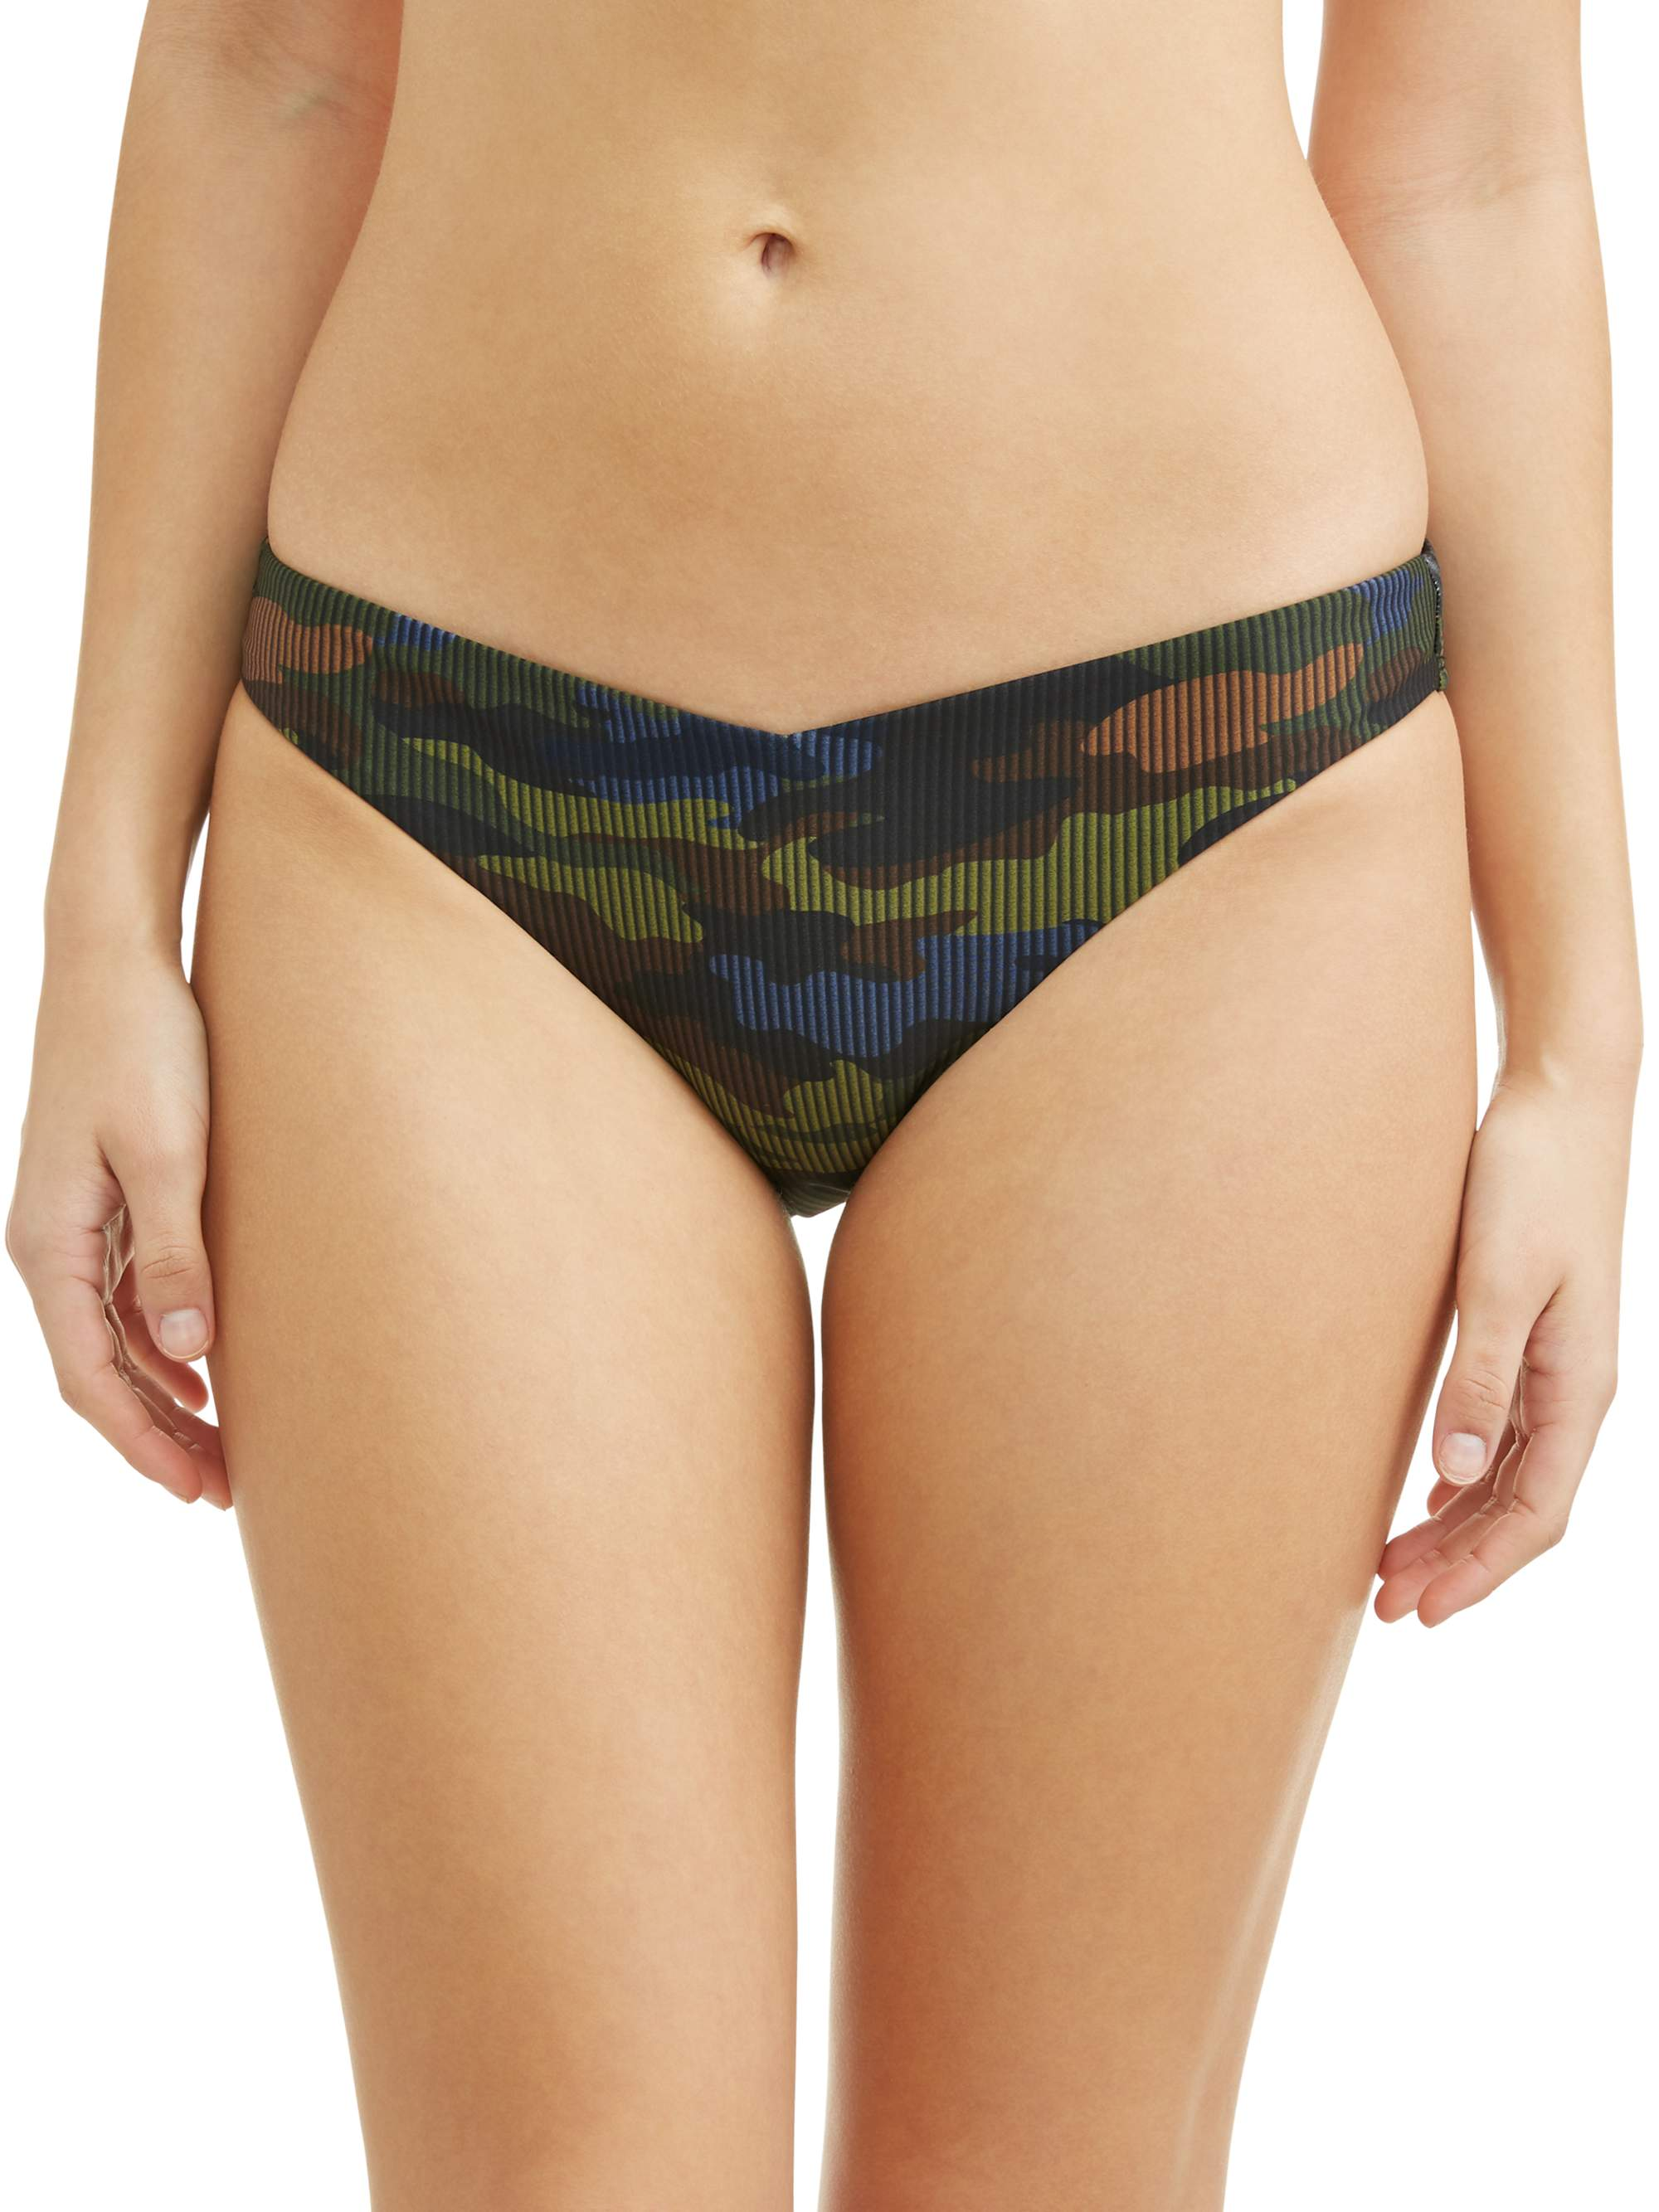 Juniors' Camozone V Swimsuit Bottom